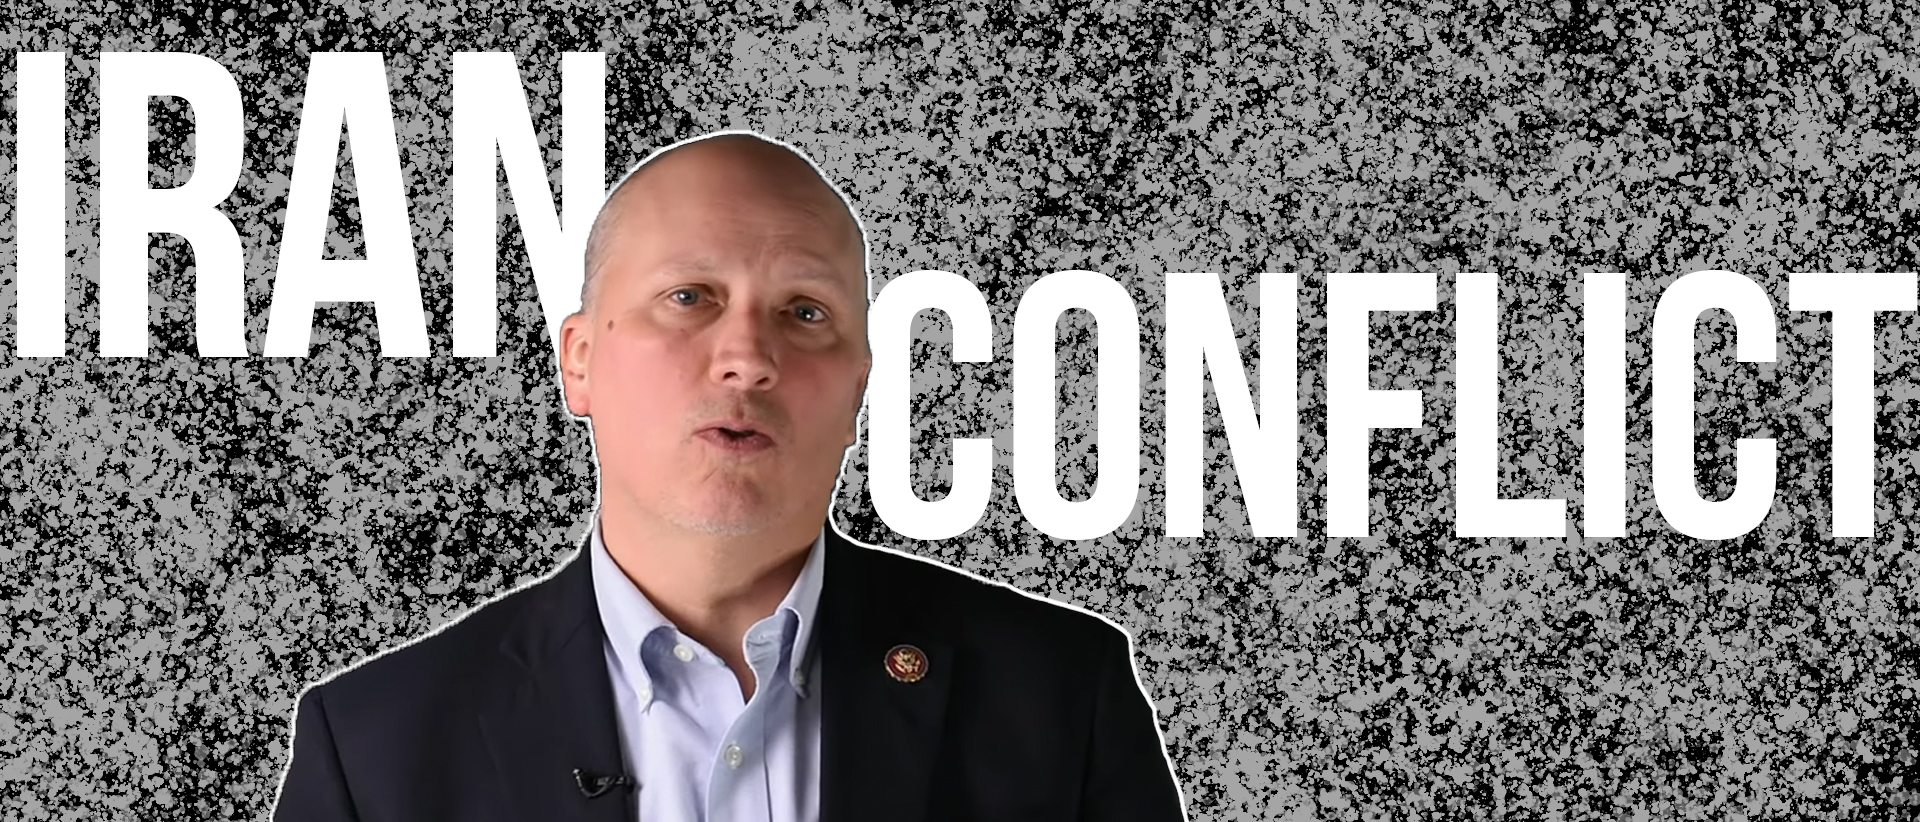 Congressman Chip Roy Shares Why He Supports President Trump's Iran Policy